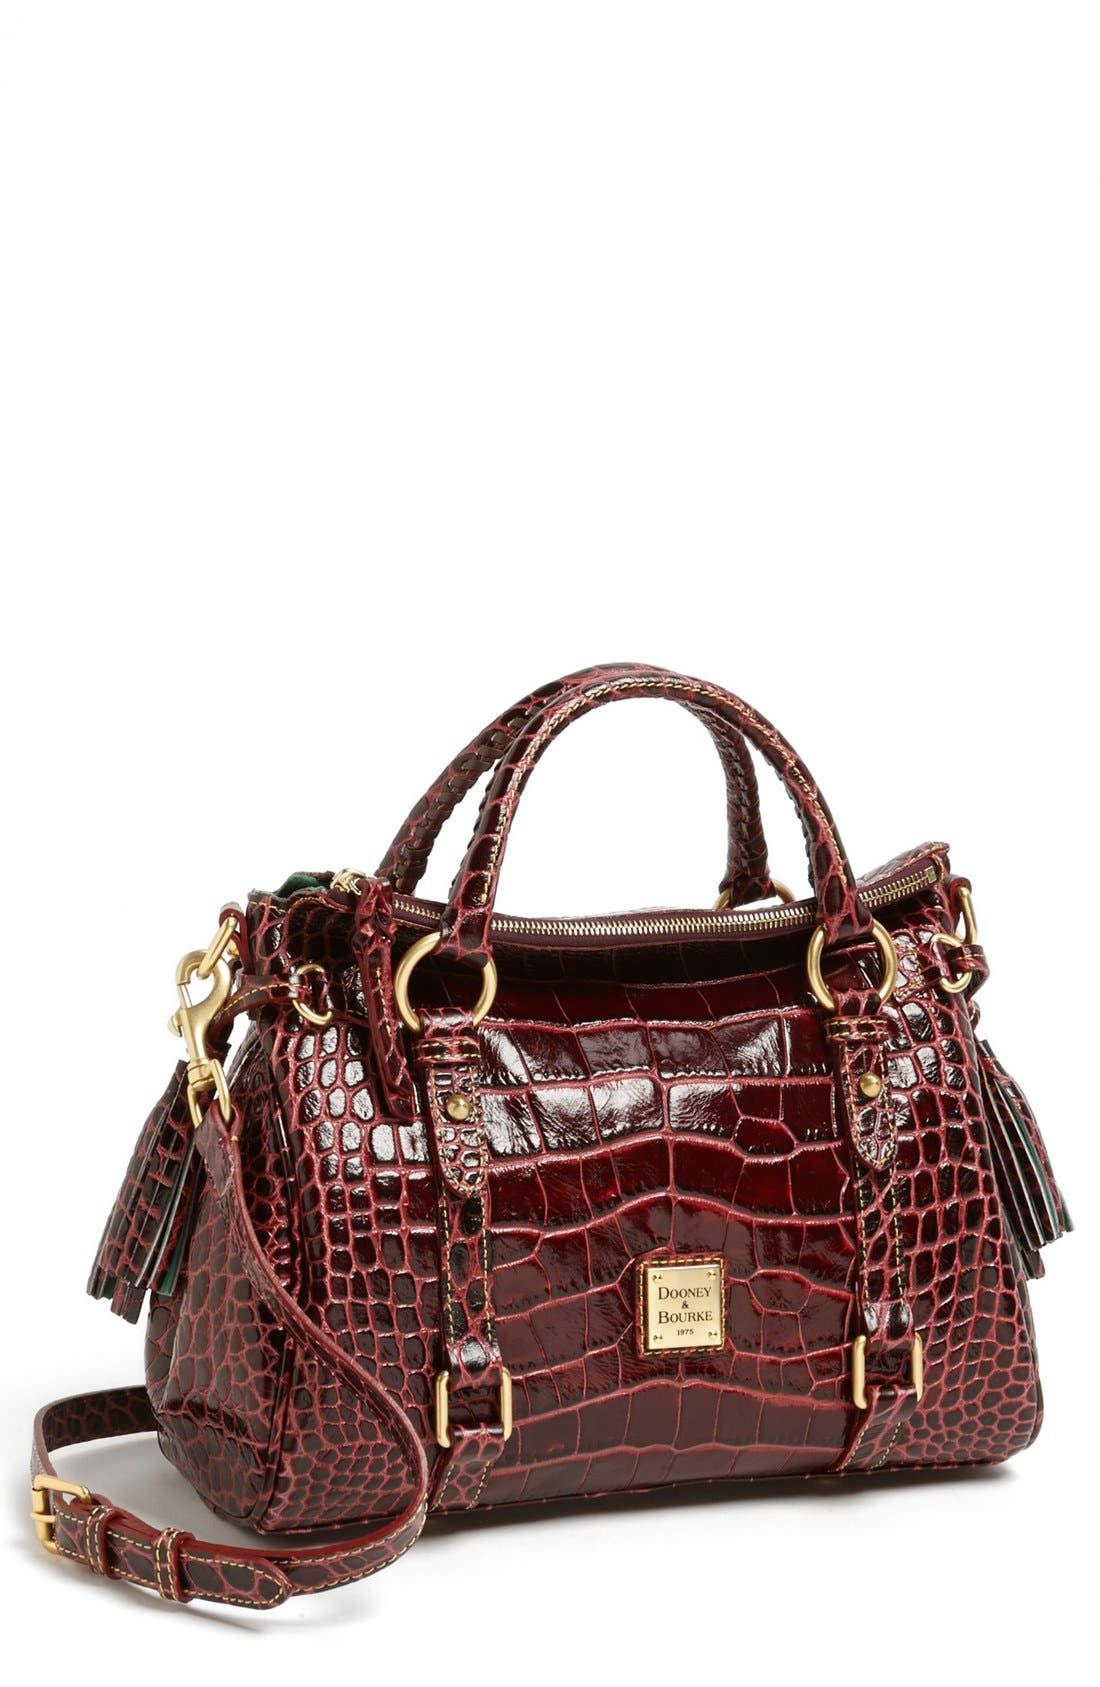 Main Image - Dooney & Bourke 'Small' Croc-Embossed Leather Satchel